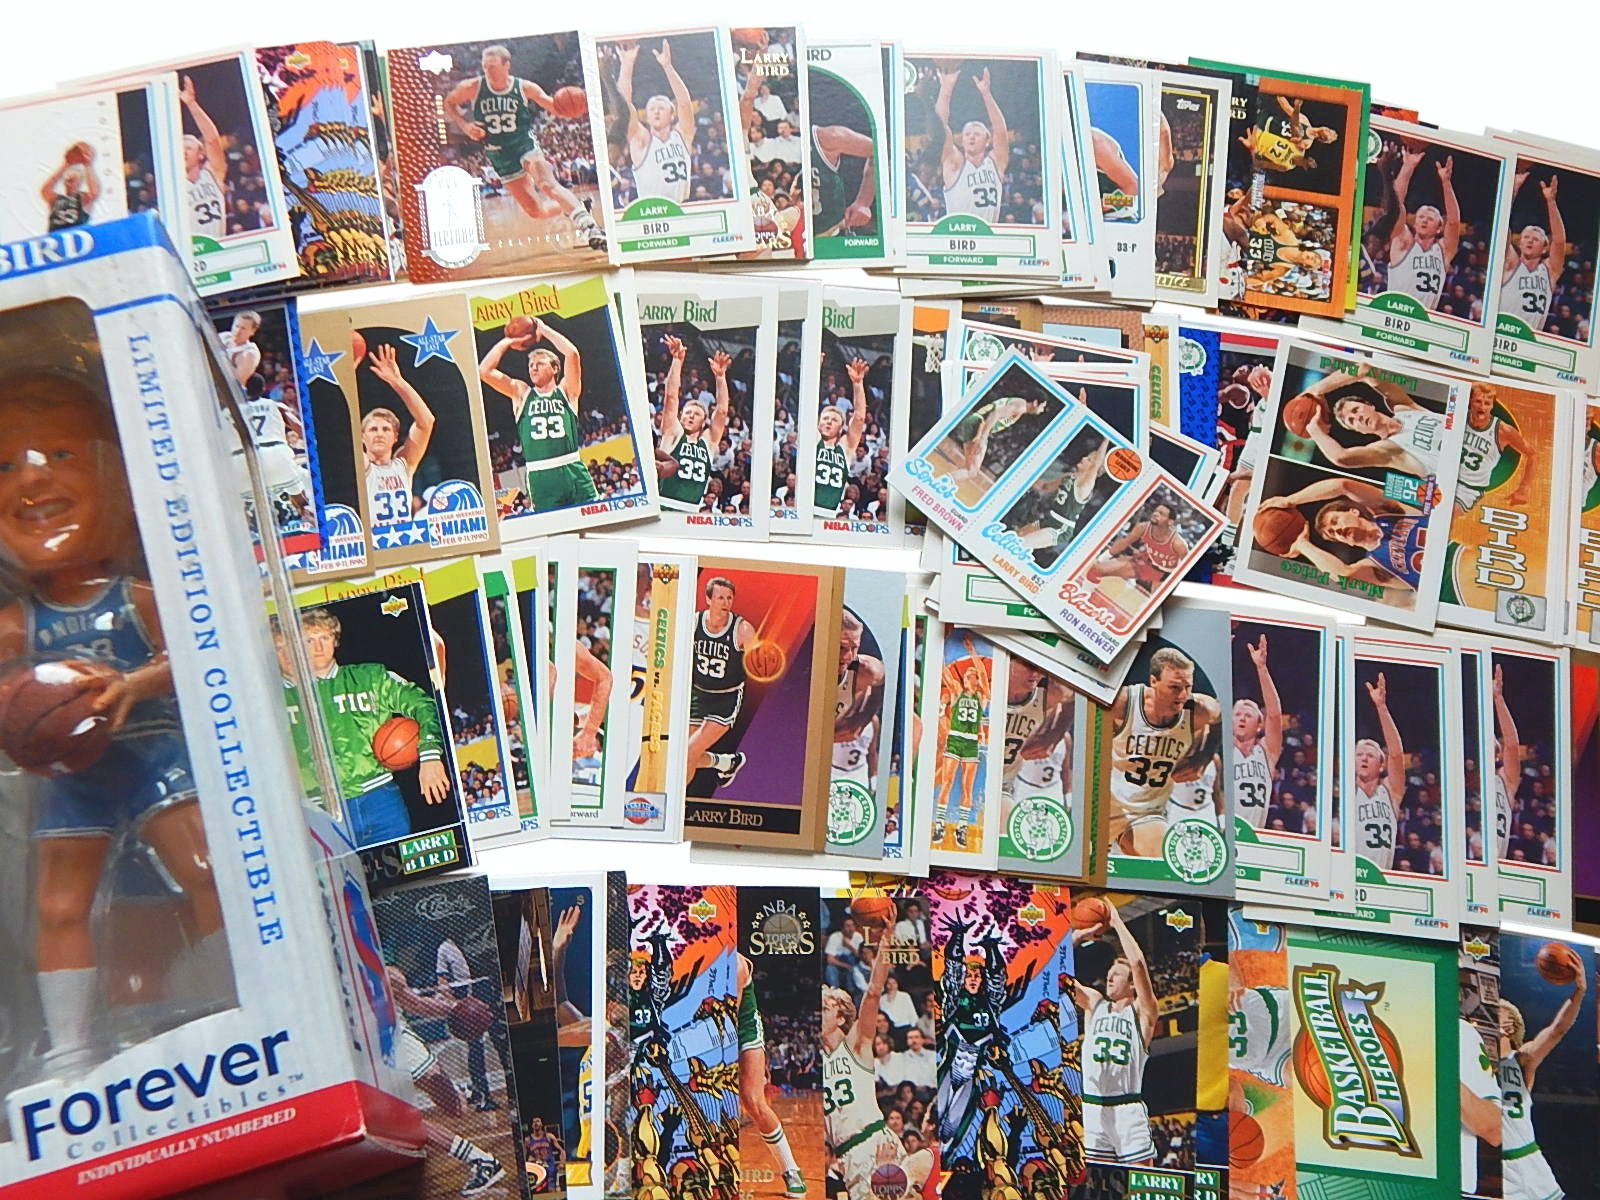 HOF Larry Bird Basketball Cards with Bobbleheads with Rookie Insert Card